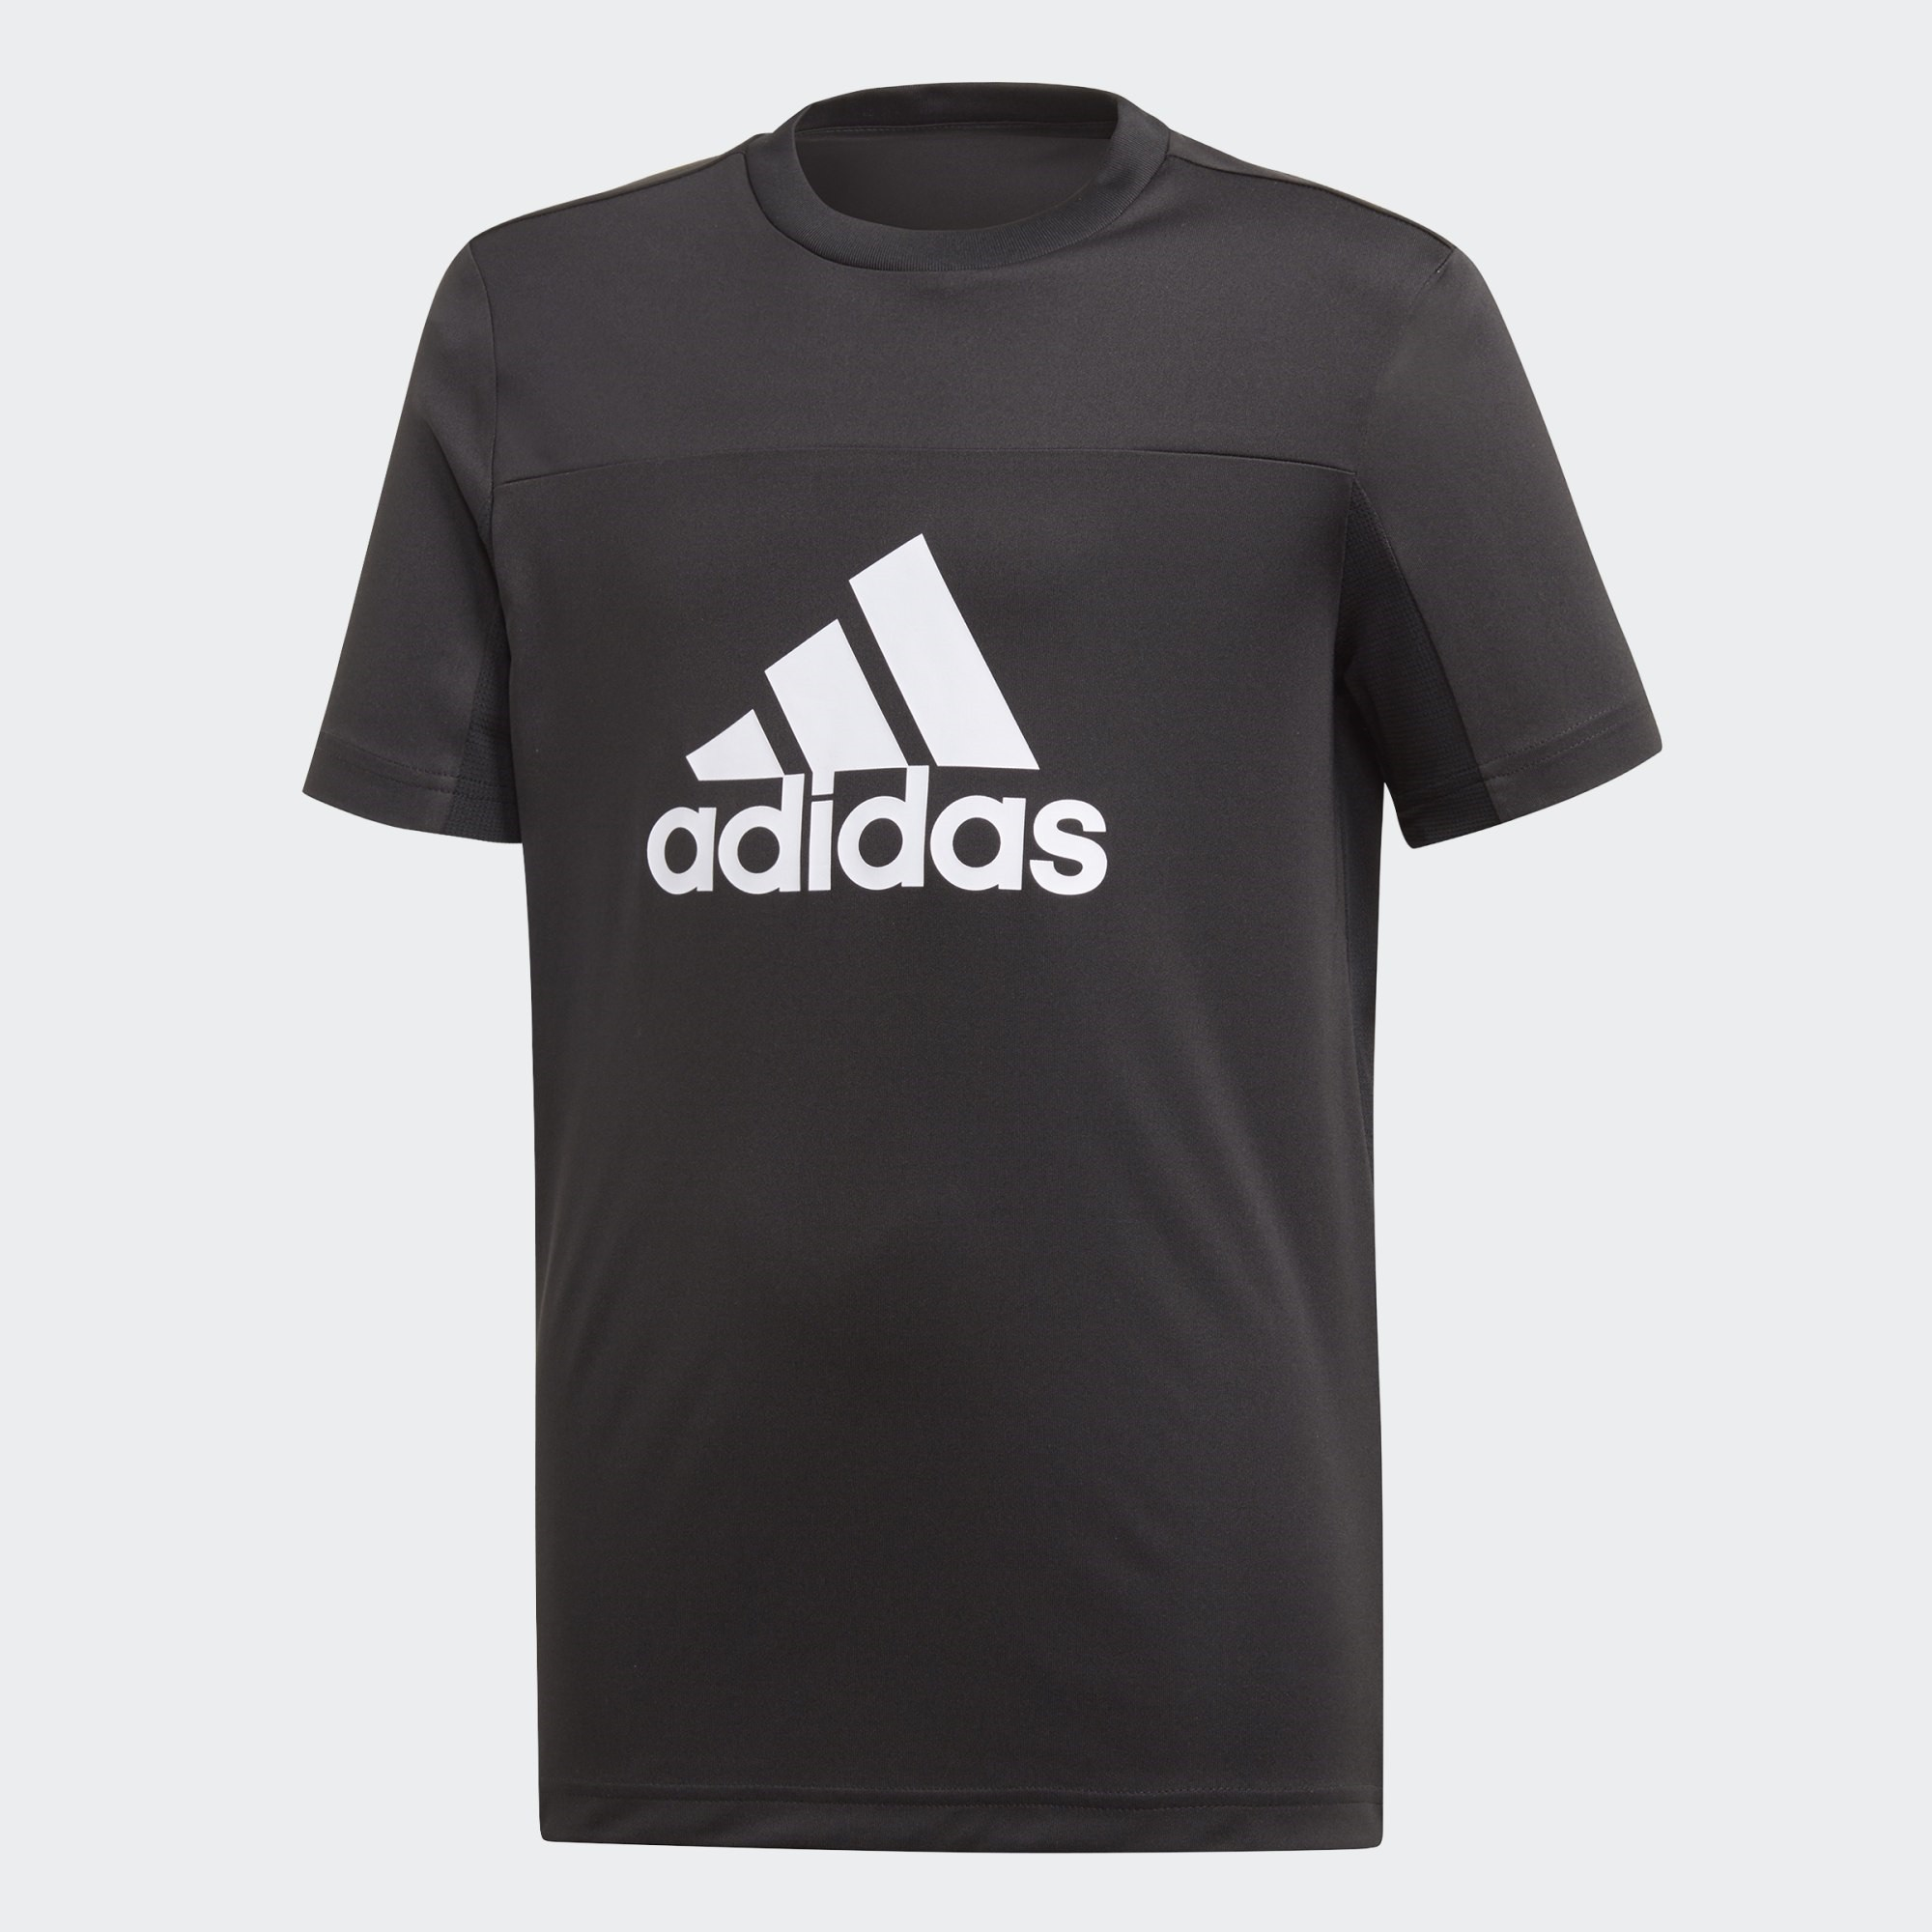 Adidas Equipment T-Shirt Kinder, schwarz, Unisex